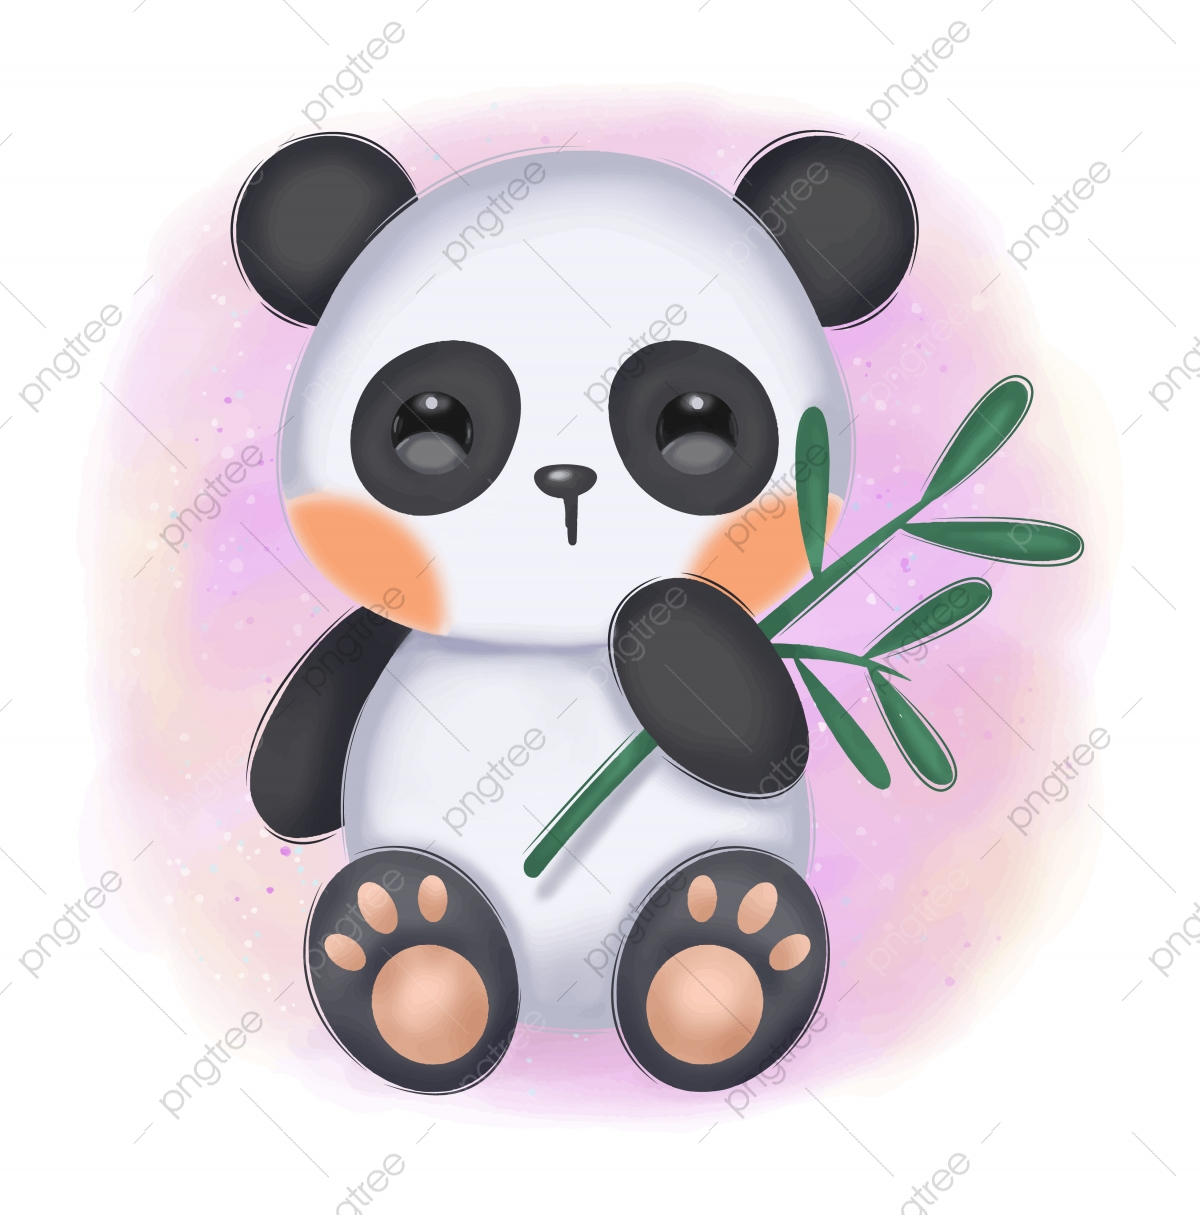 Adorable Animal Illustration For Personal Project Background